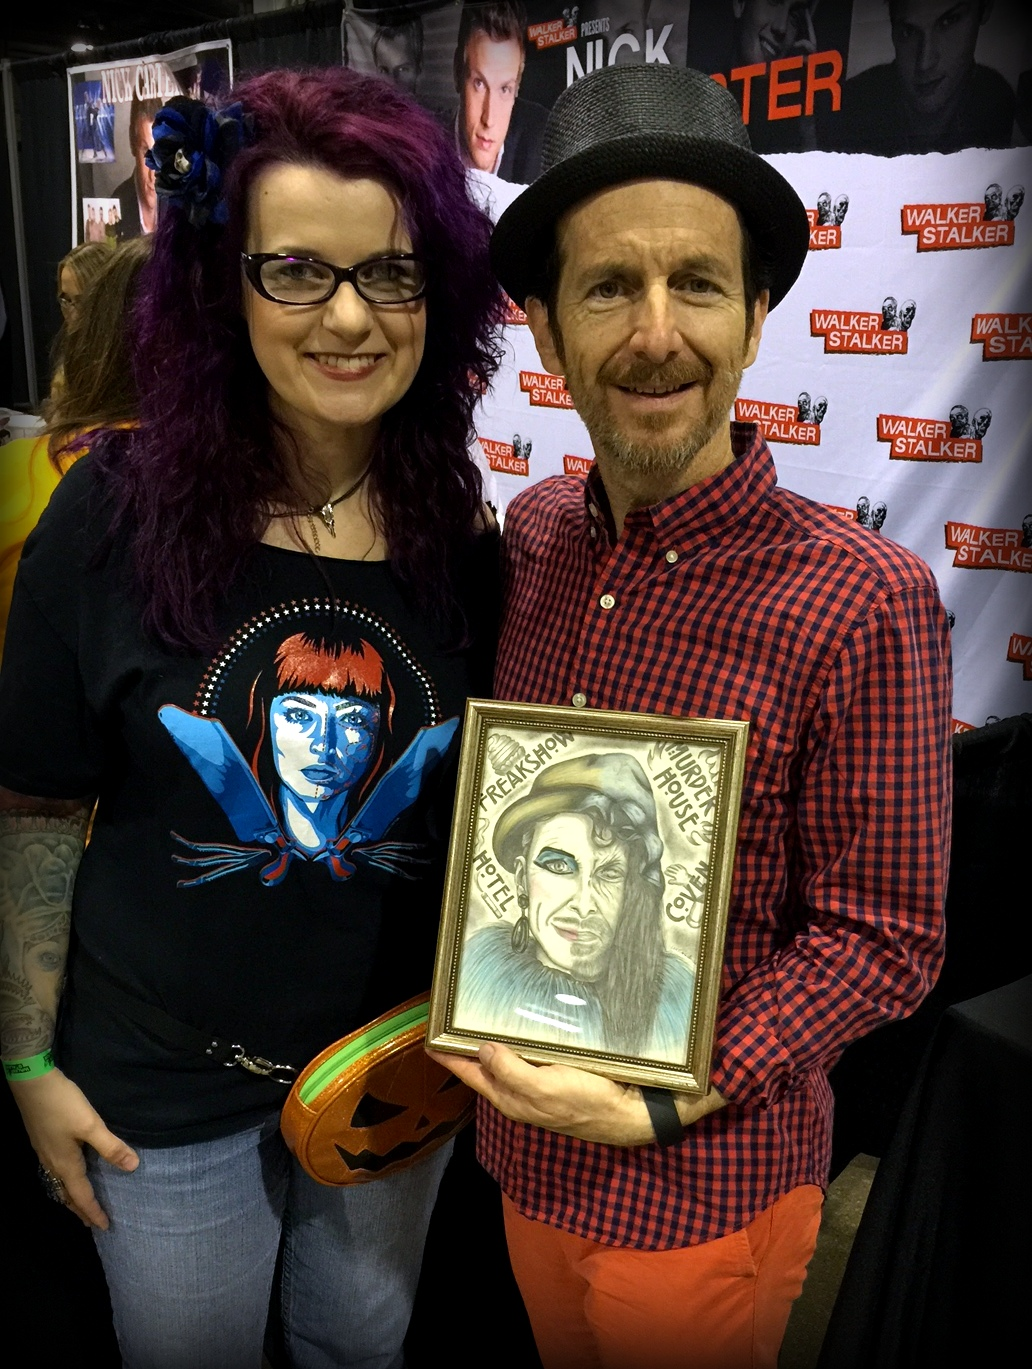 Gifting to Denis O'Hare